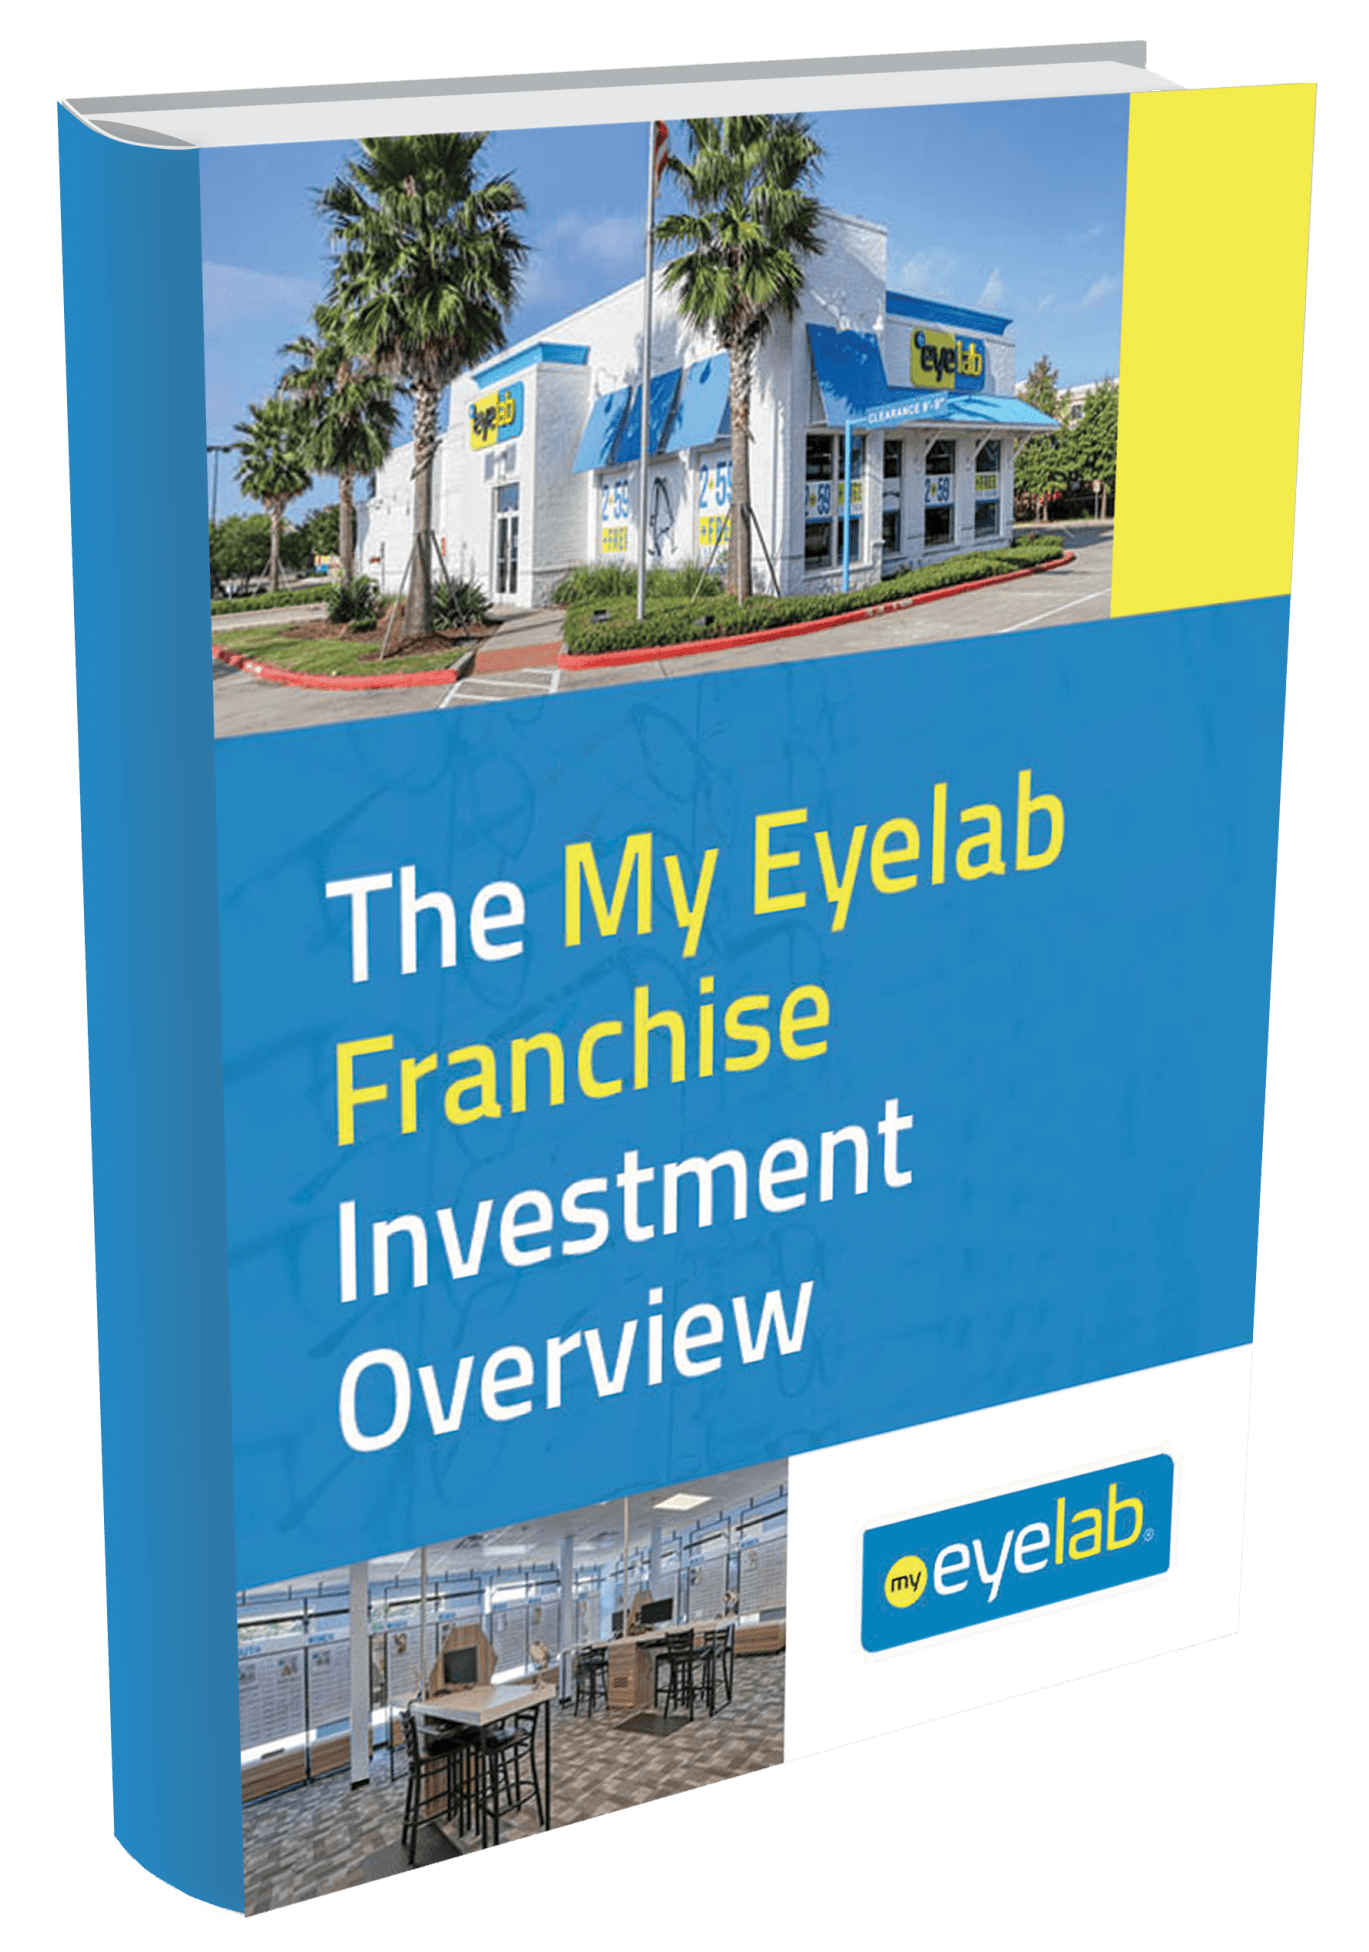 Franchise Investment Guide